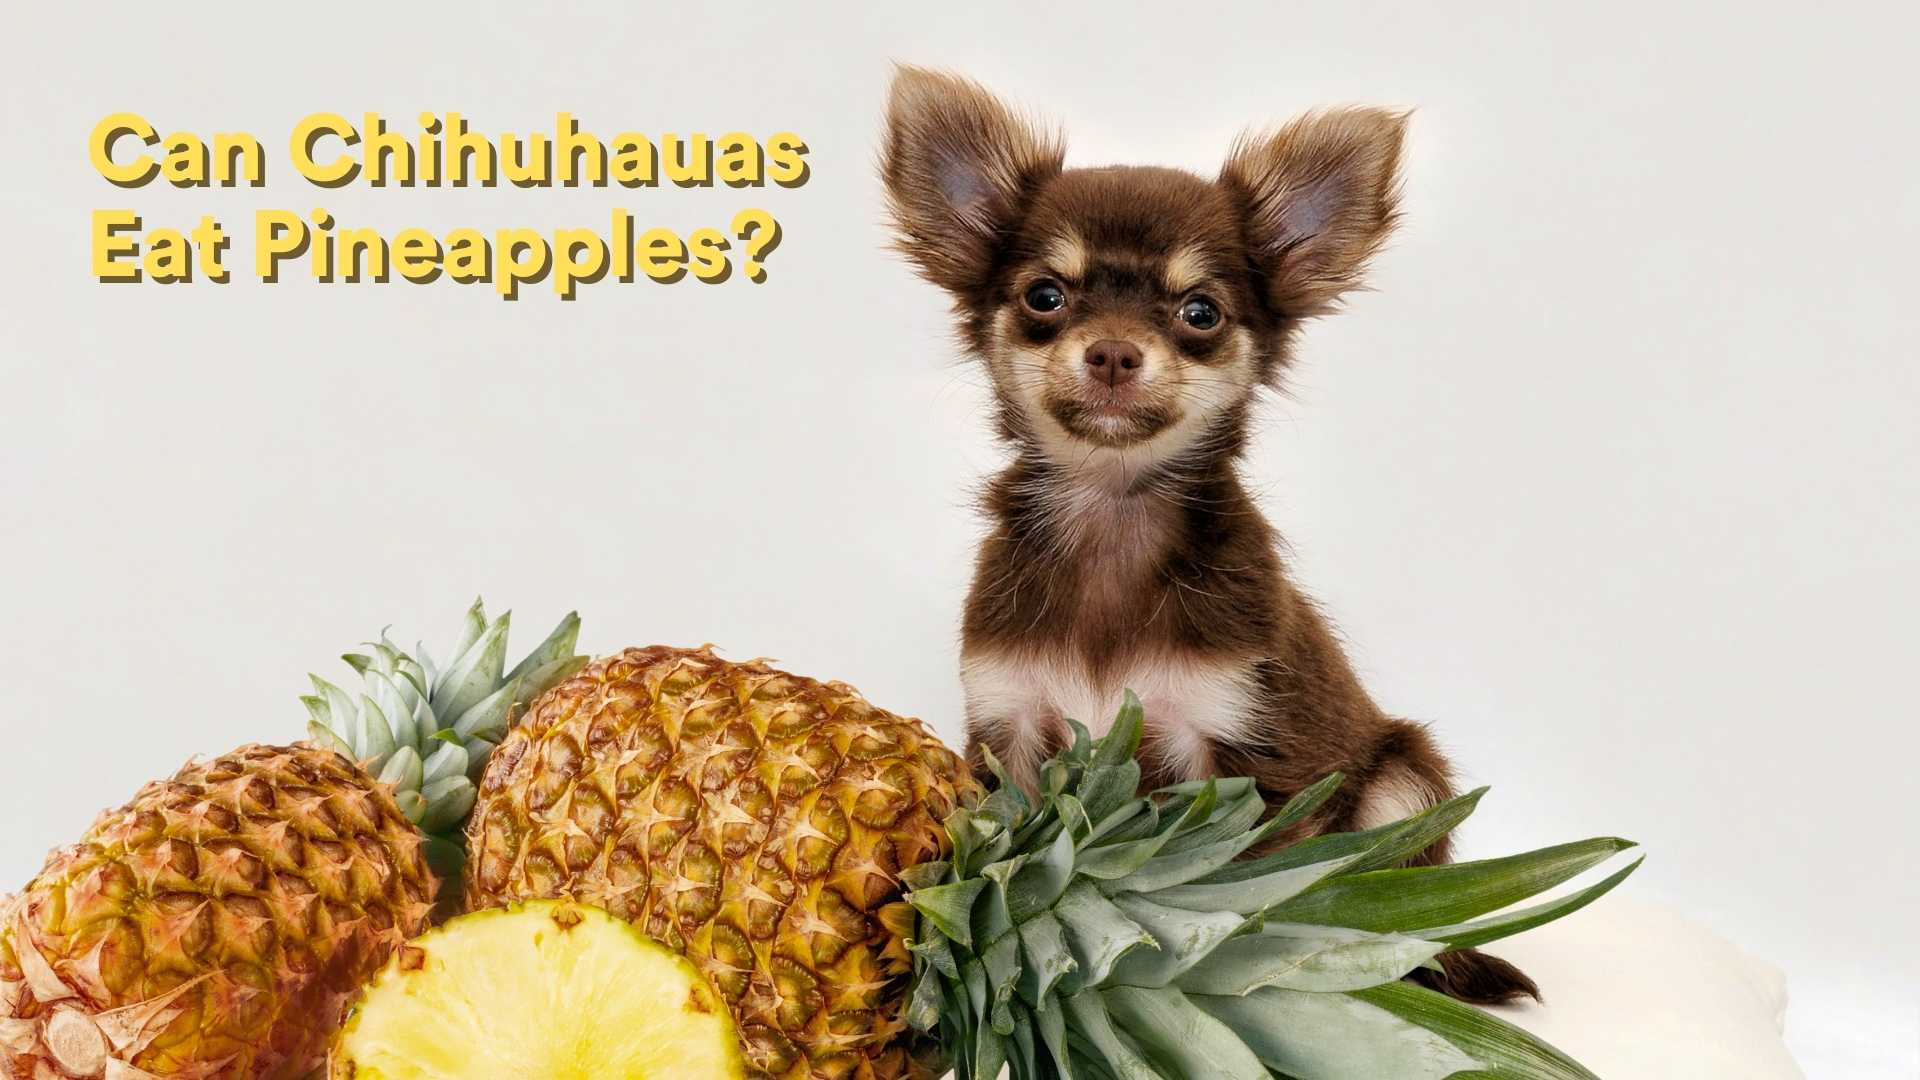 Can Chihuahuas Eat Pineapples?